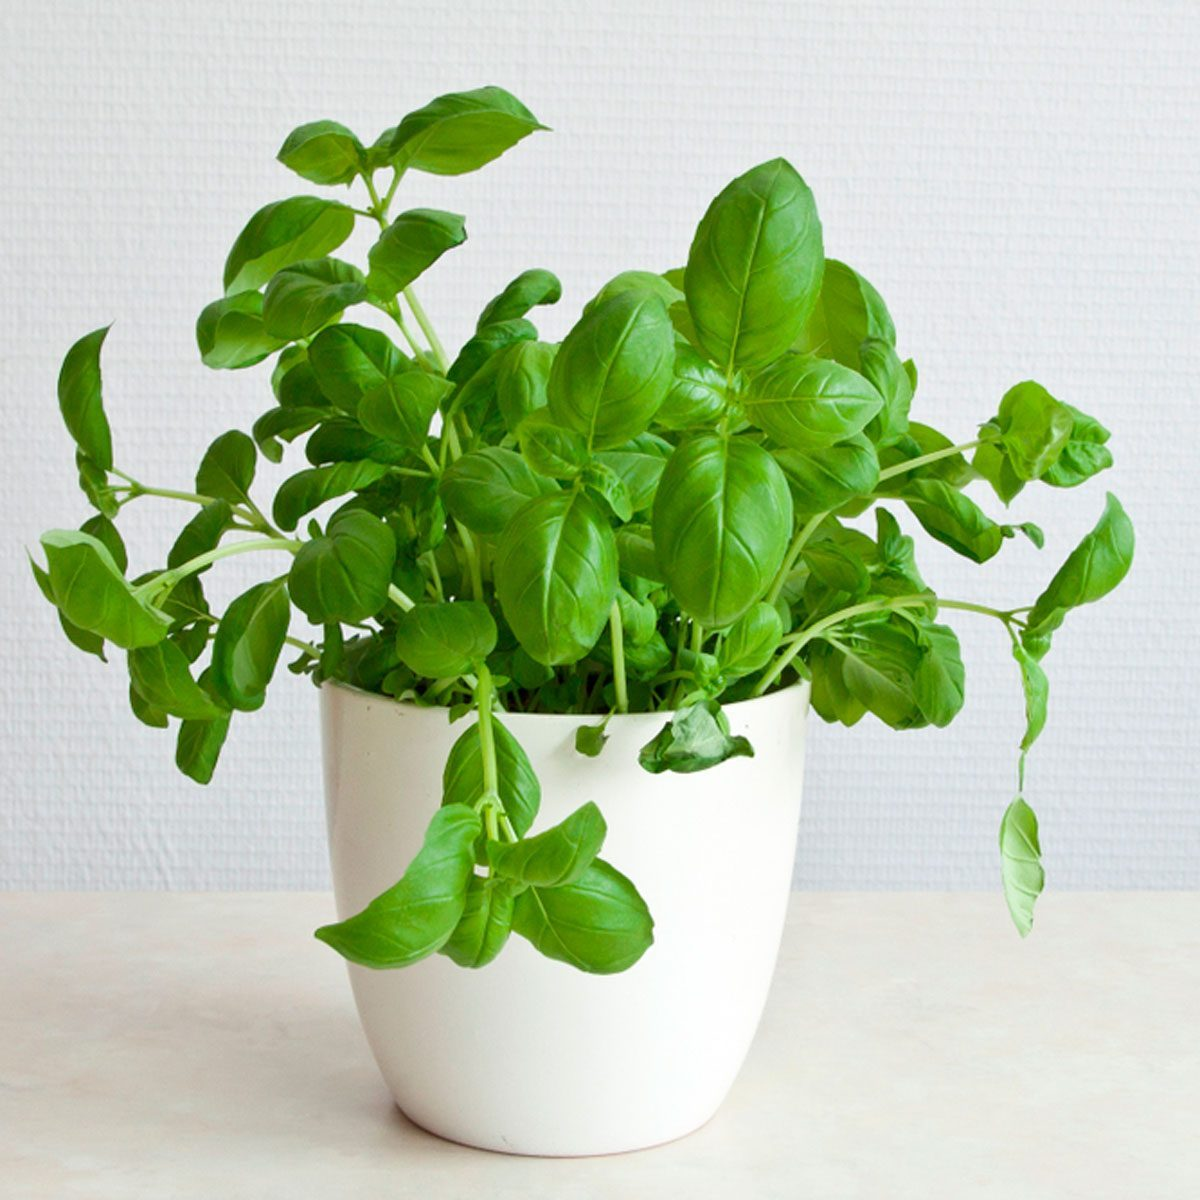 basil plant indoors